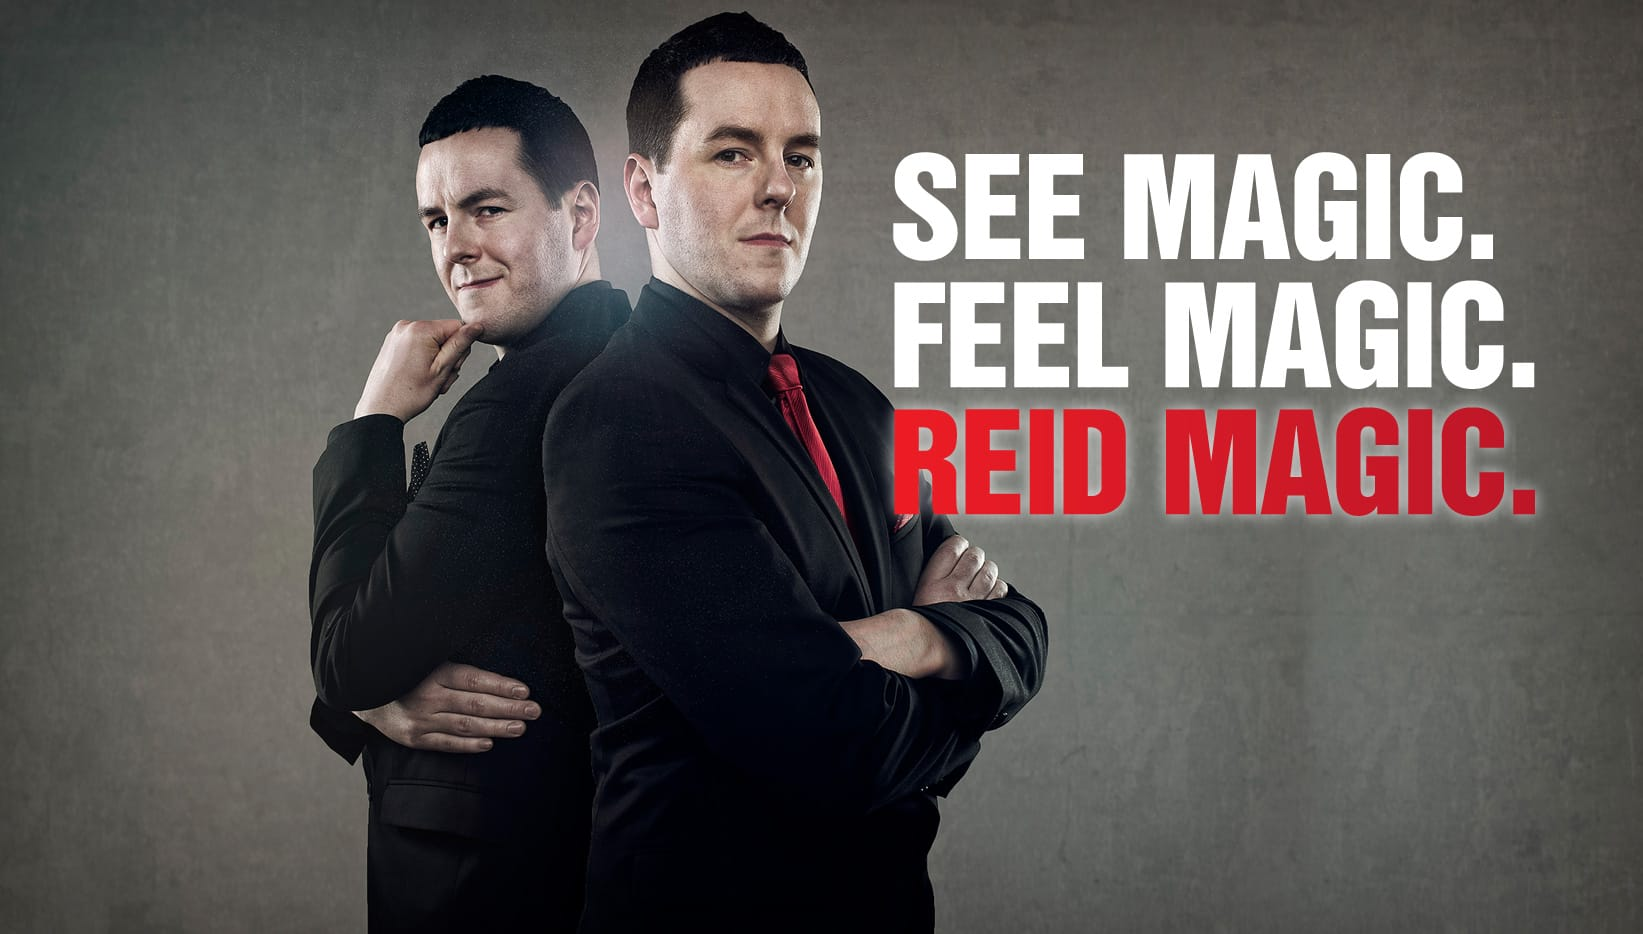 SEE MAGIC, FEEL MAGIC, REID MAGIC